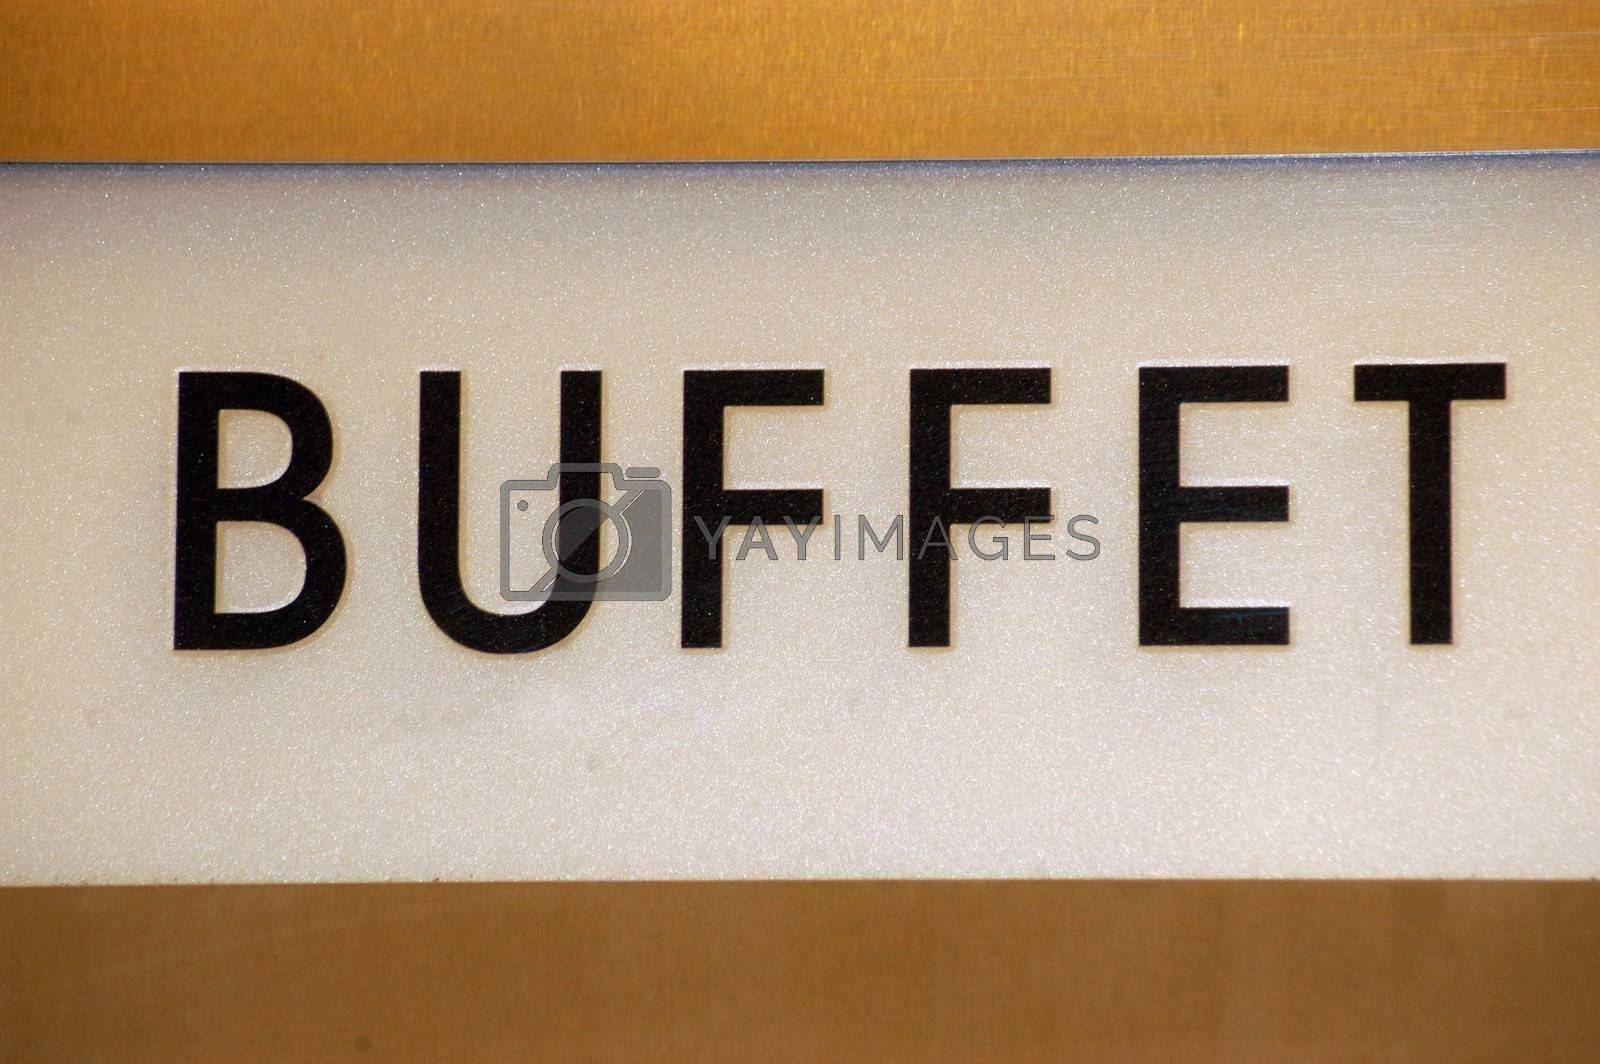 a black Buffet sign with white background on a wall